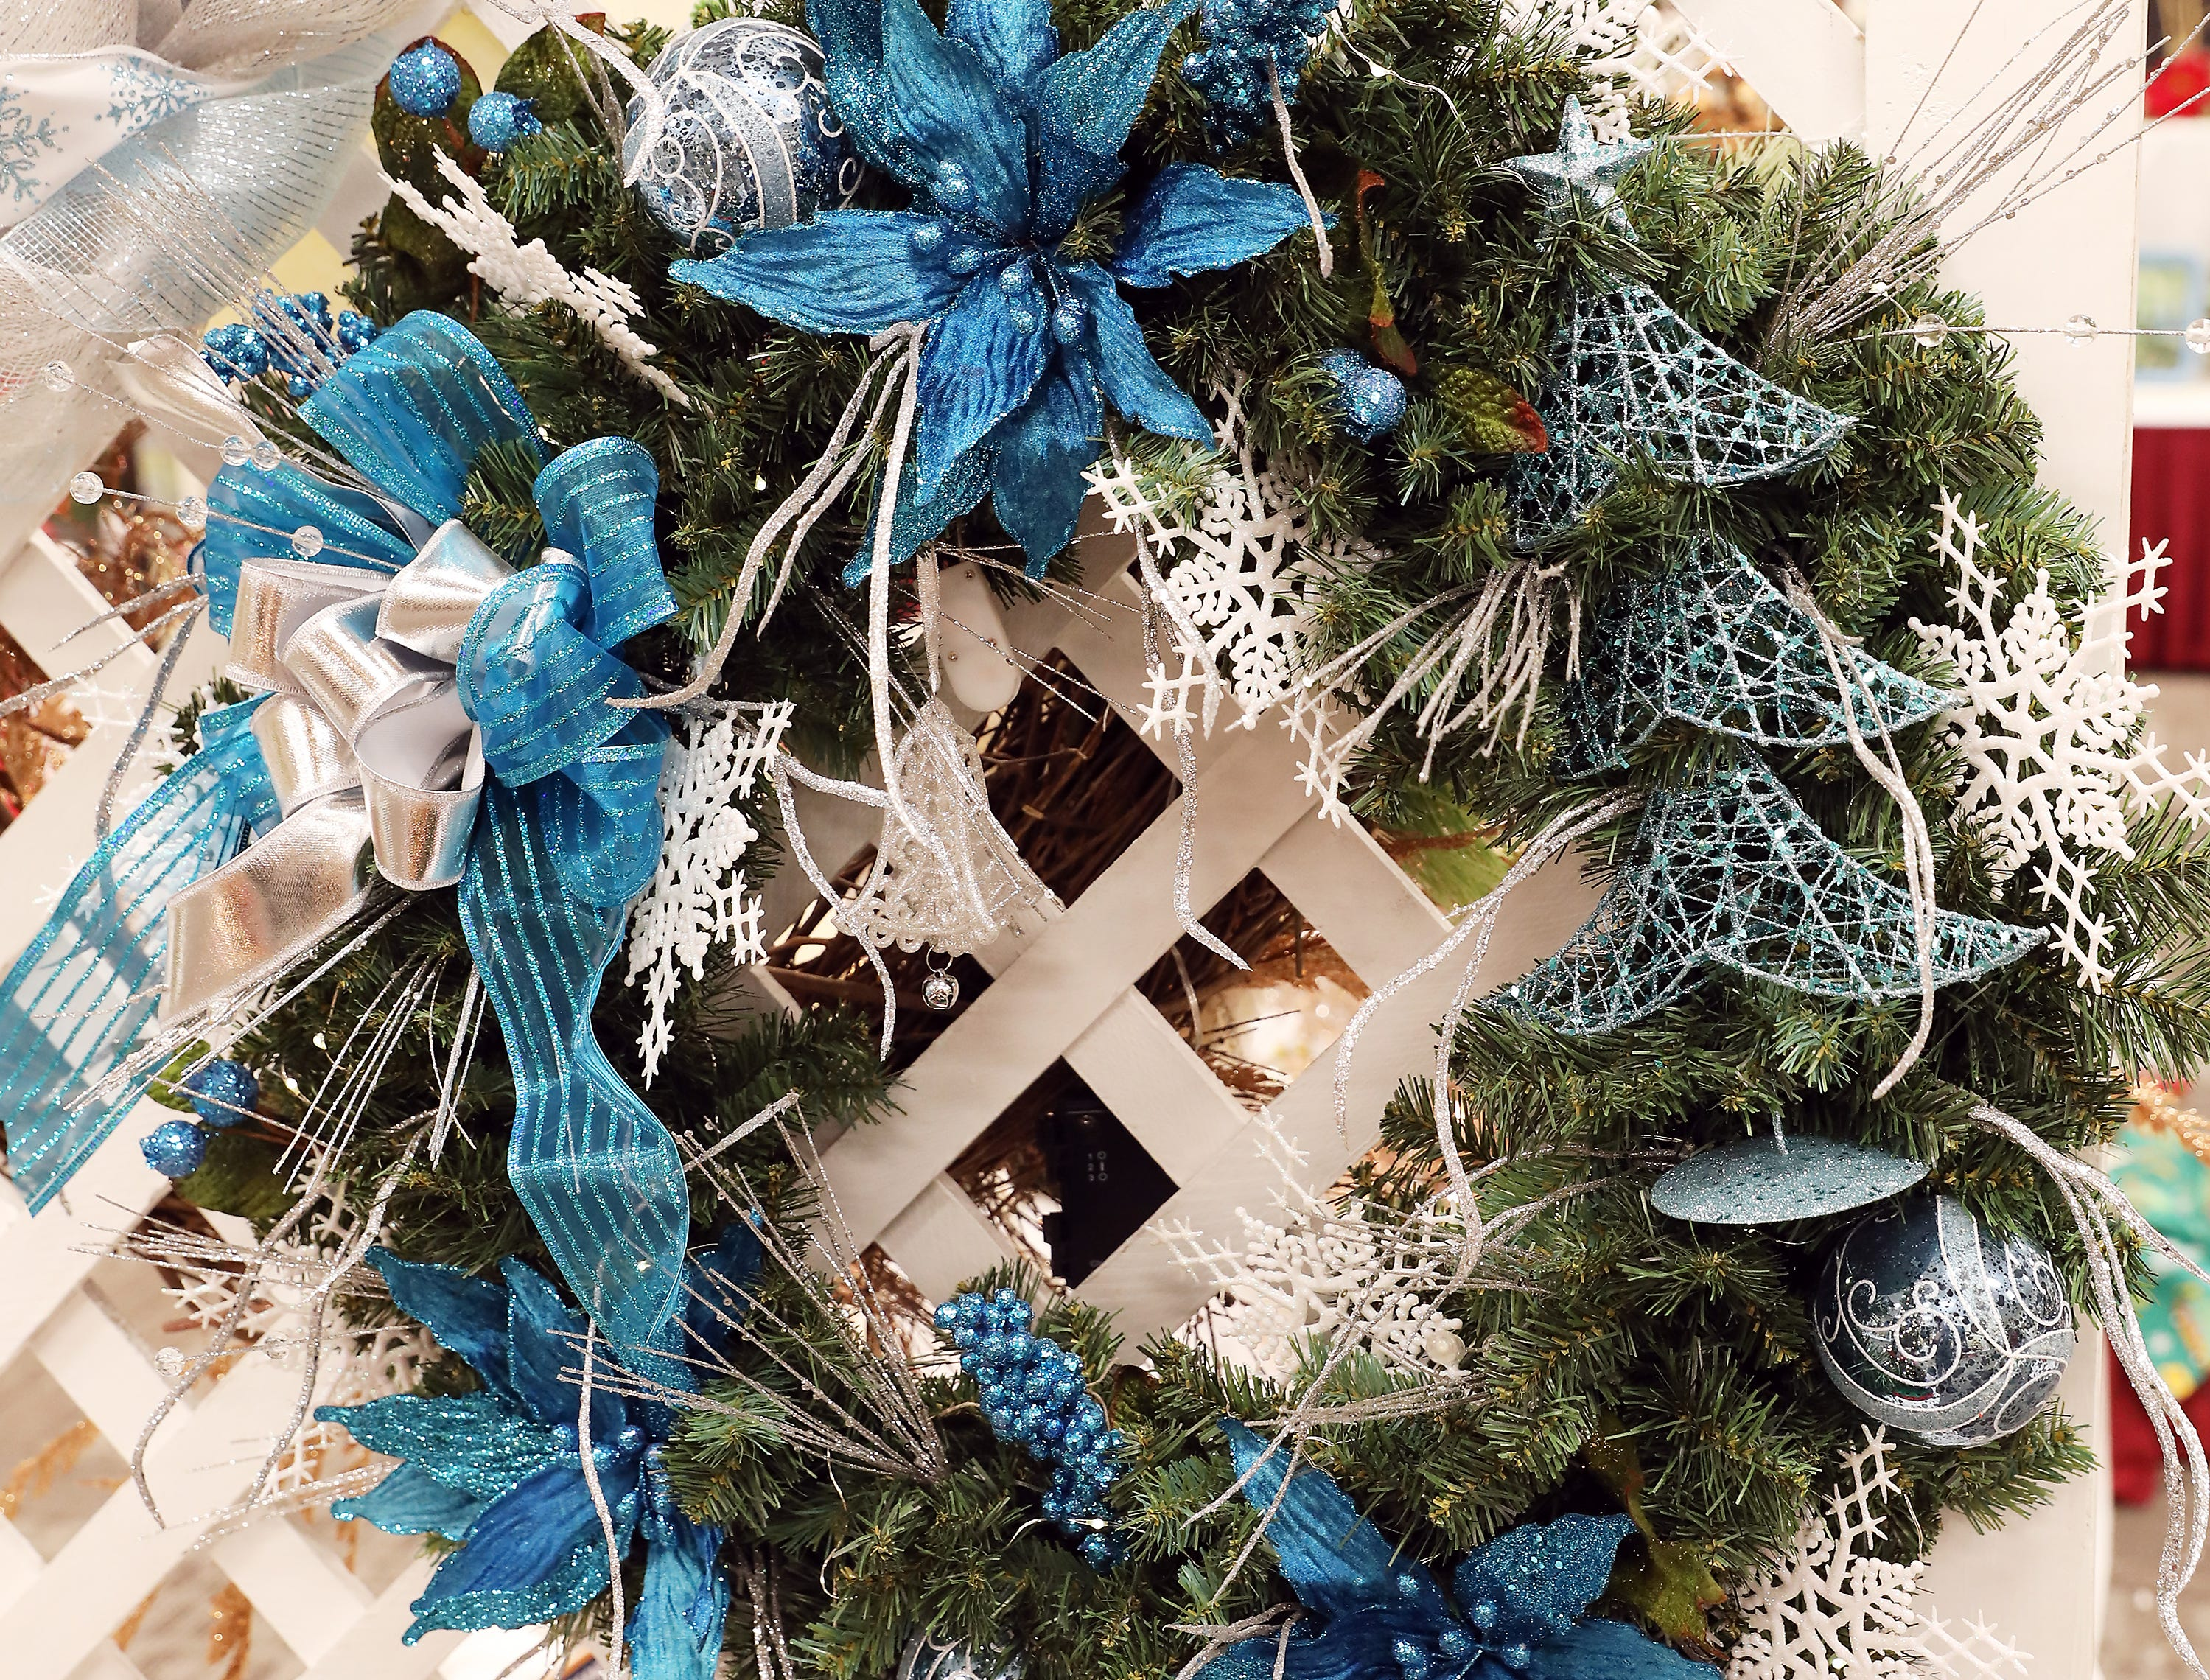 177A3:45 PMBeeClean Car WashWreathChristmas in TealA beautiful green pine wreath with clear lights decorated with teal and white accents.3 -$100 gift cards to BeeClean Car Wash and 3 car wash buckets filled with all your car washing needs.